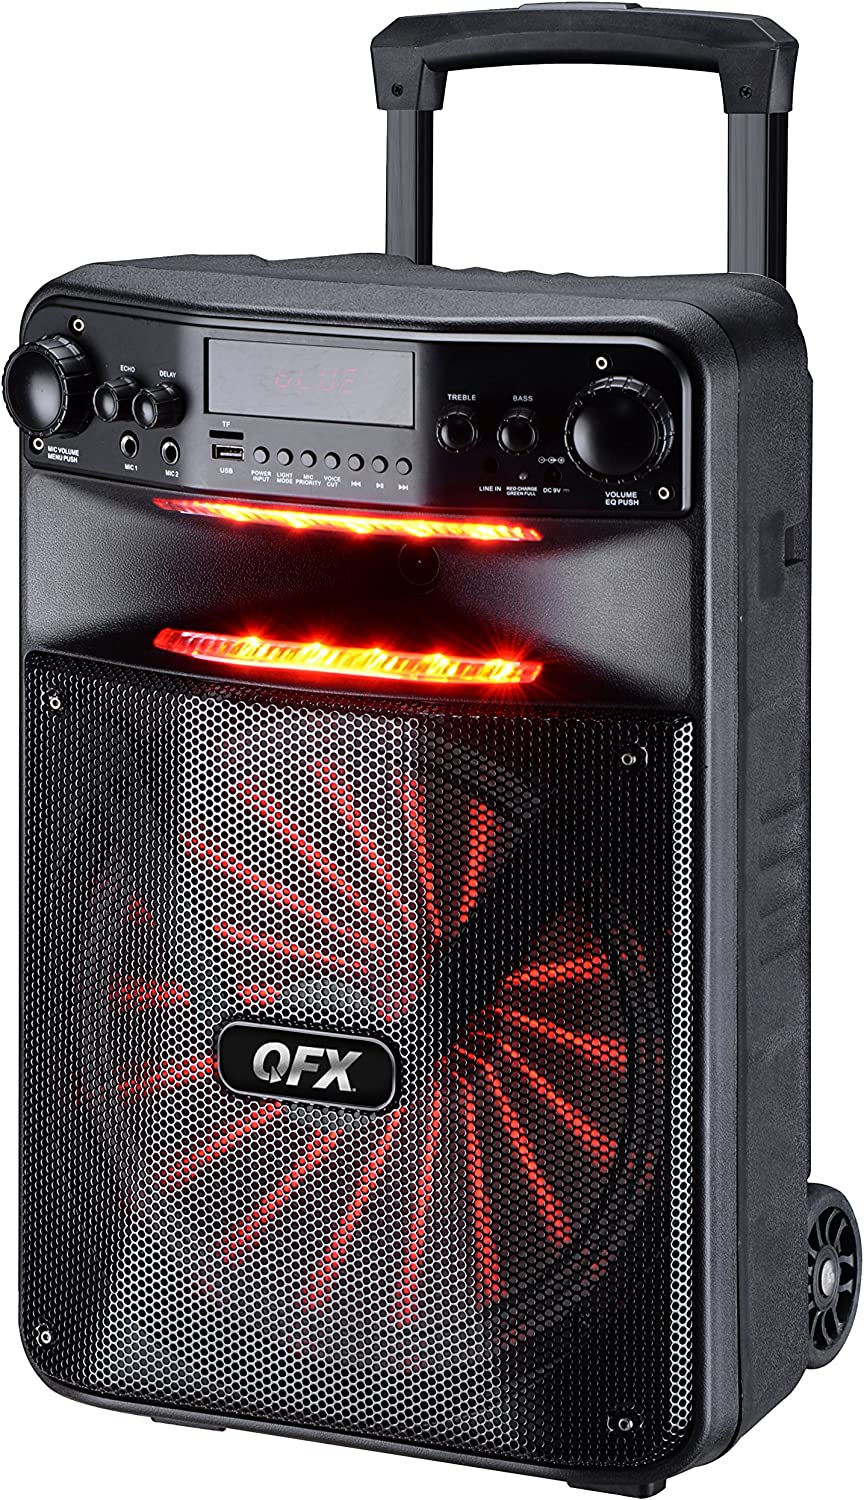 QFX PBX-1210 Smart App Controlled Party Speaker with Light Effects